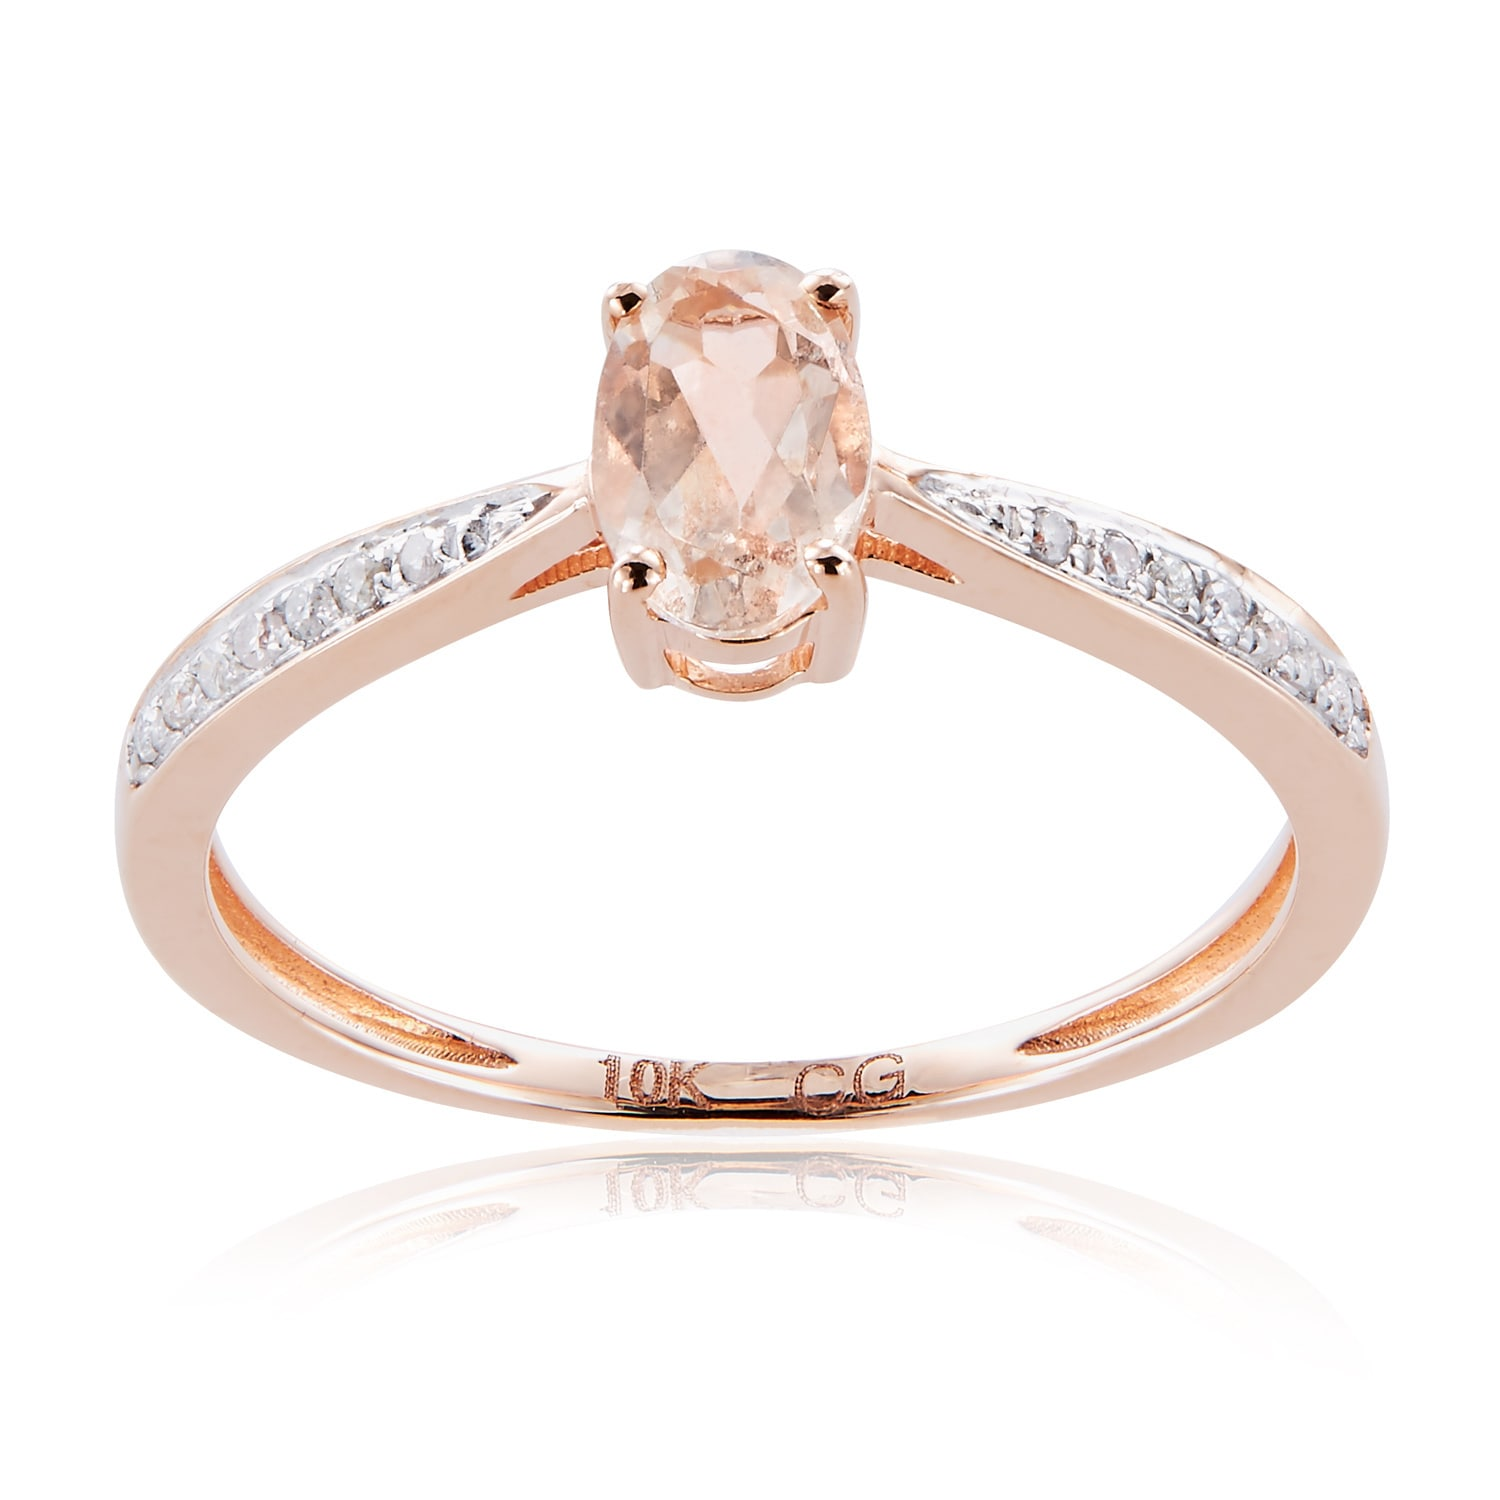 Diamond Wedding Band in 10K Pink Gold G-H,I2-I3 Size-4.5 1//10 cttw,